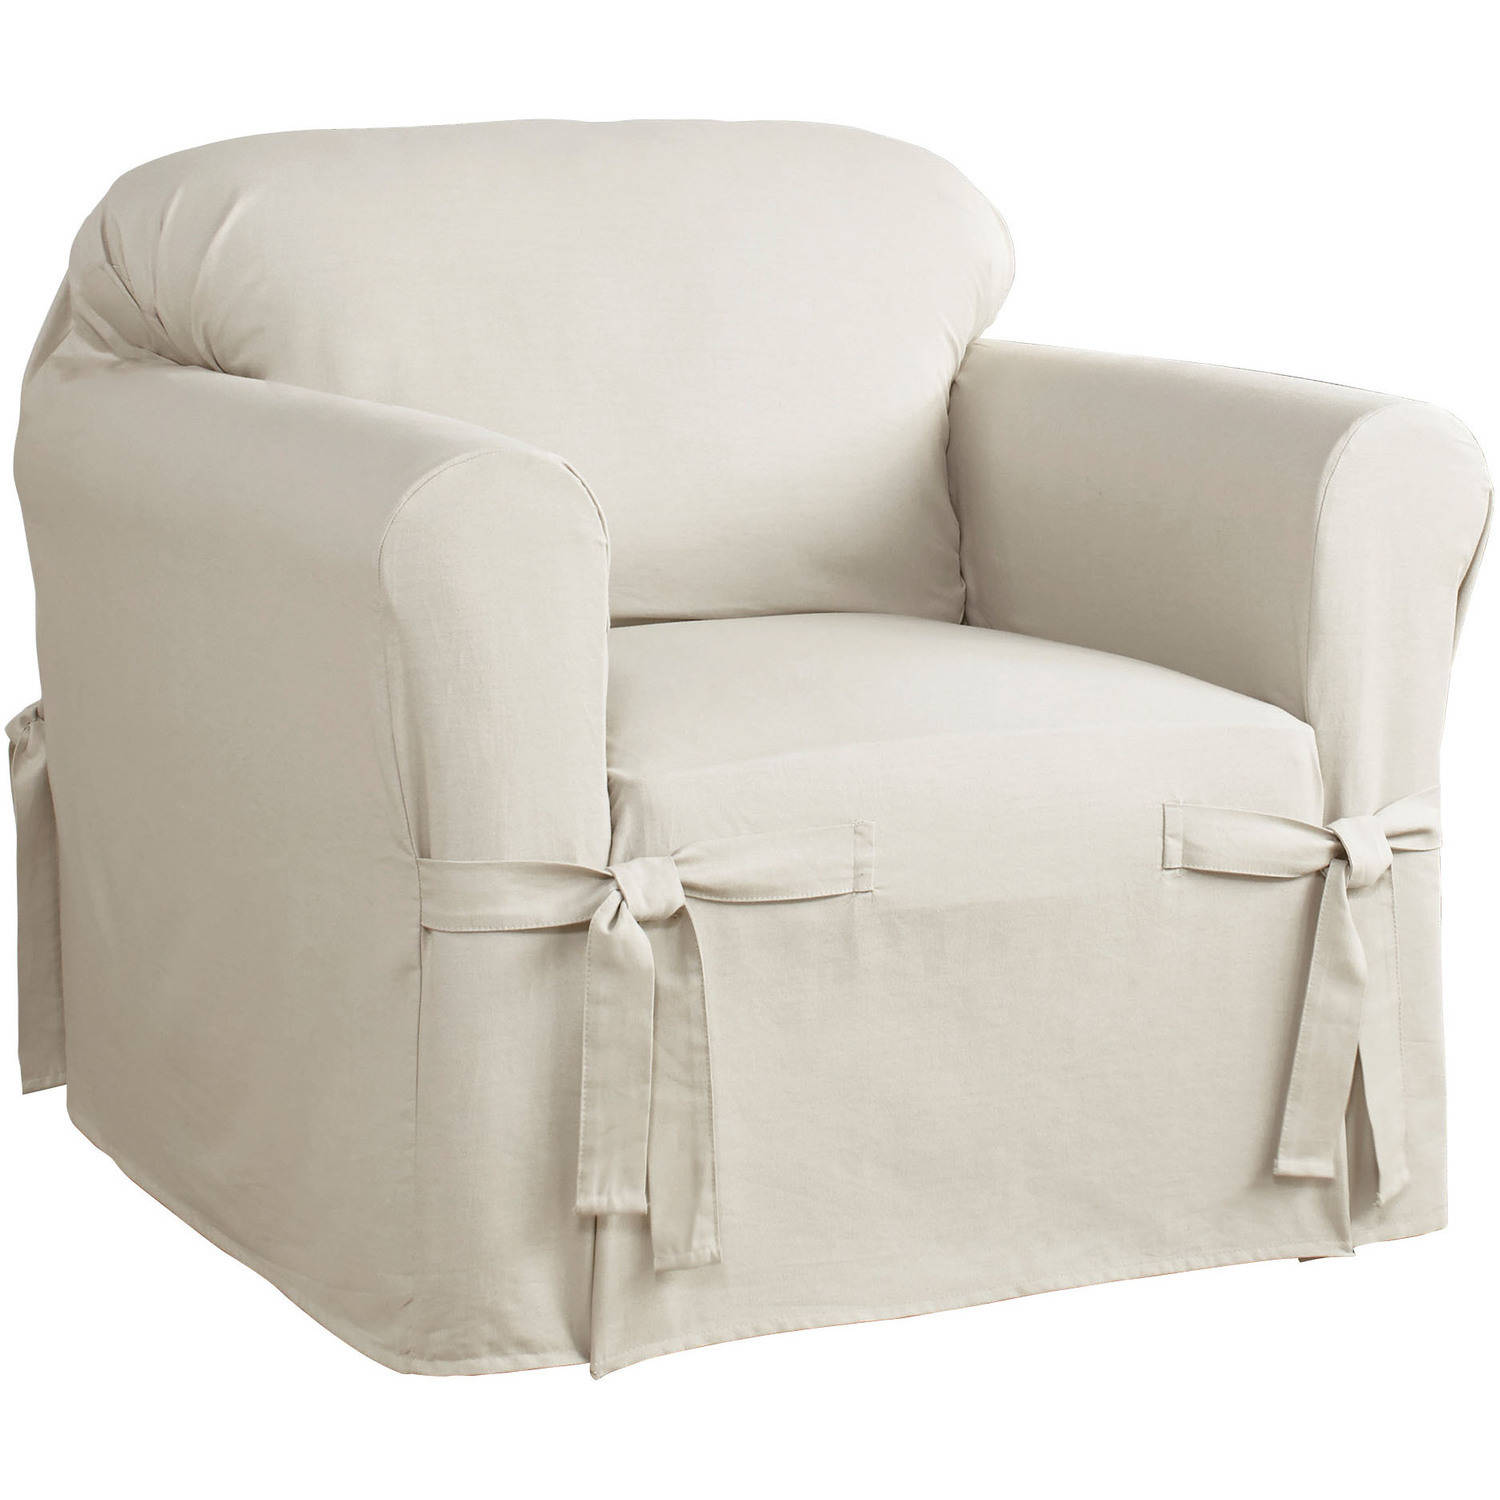 Slip Cover For Chair Serta Relaxed Fit Cotton Duck Furniture Slipcover Chair 1 Piece Box Cushion